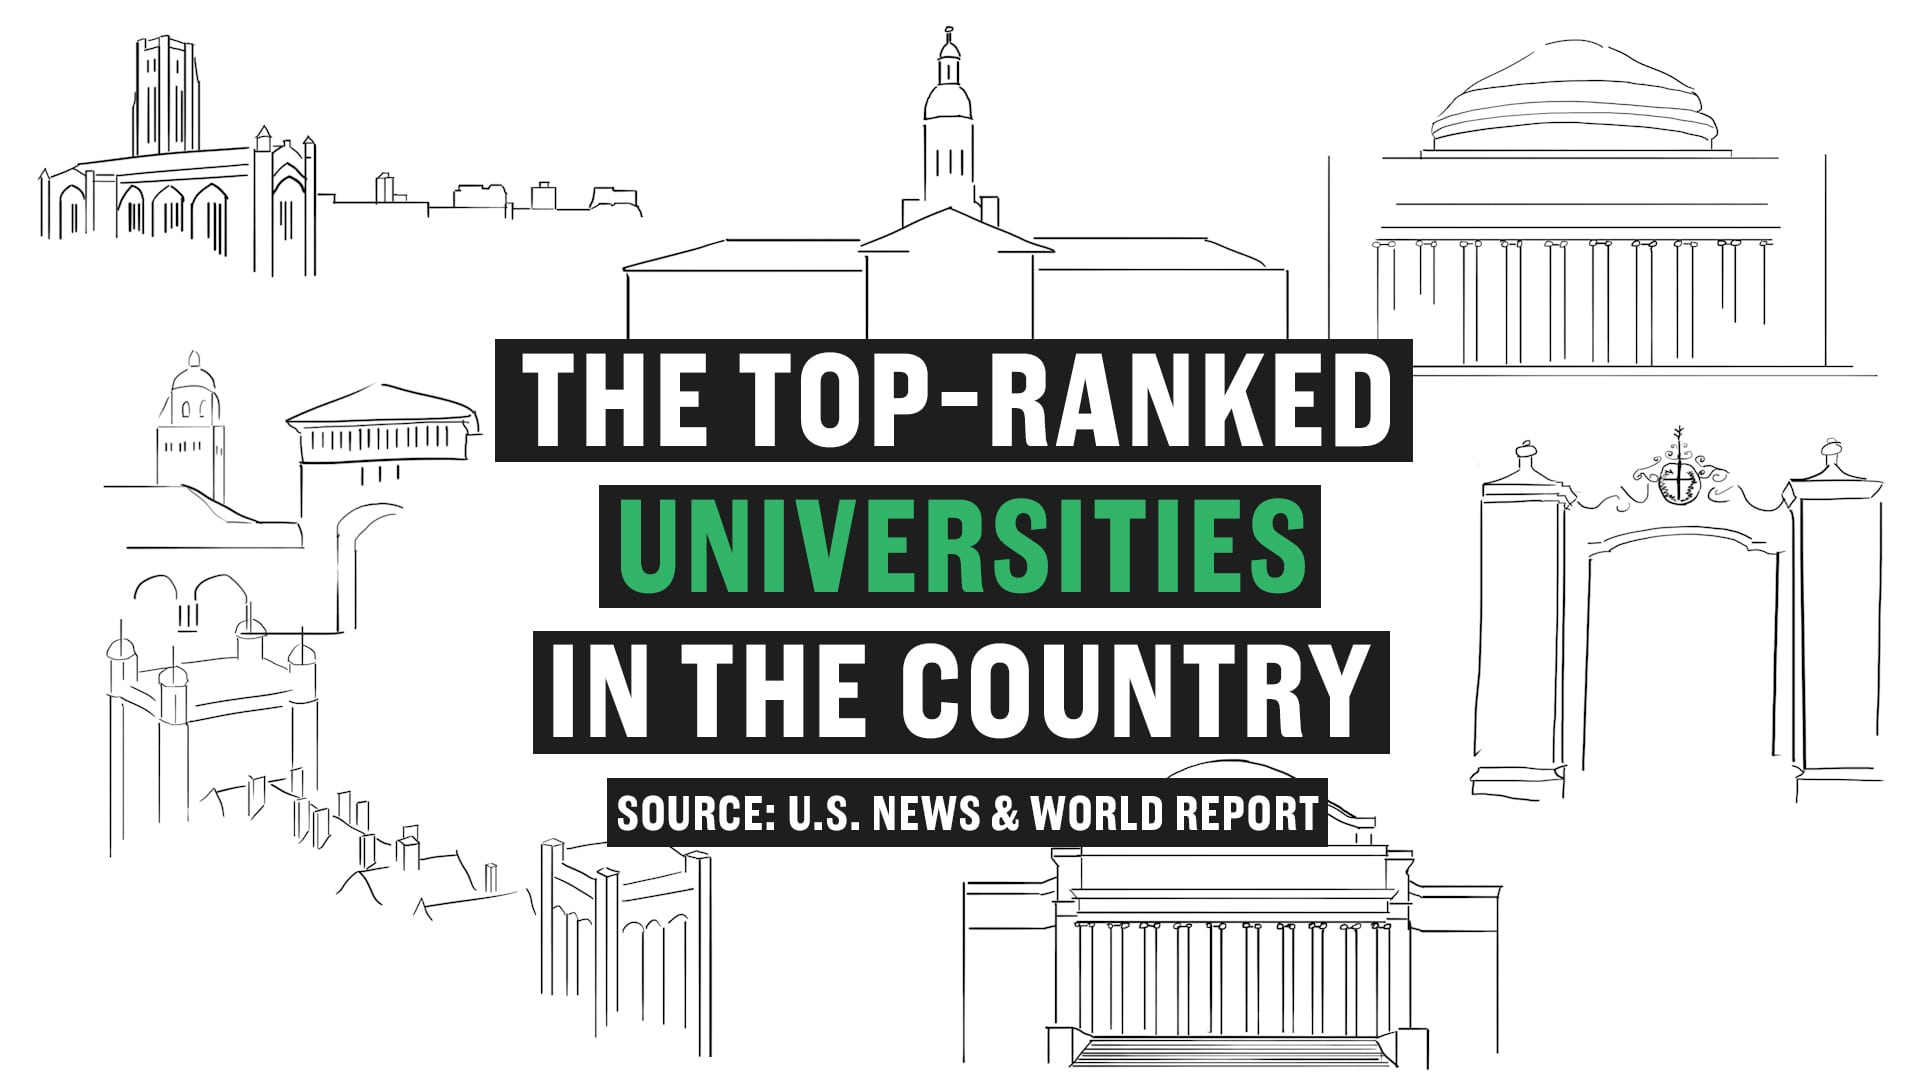 These are the top universities in the US